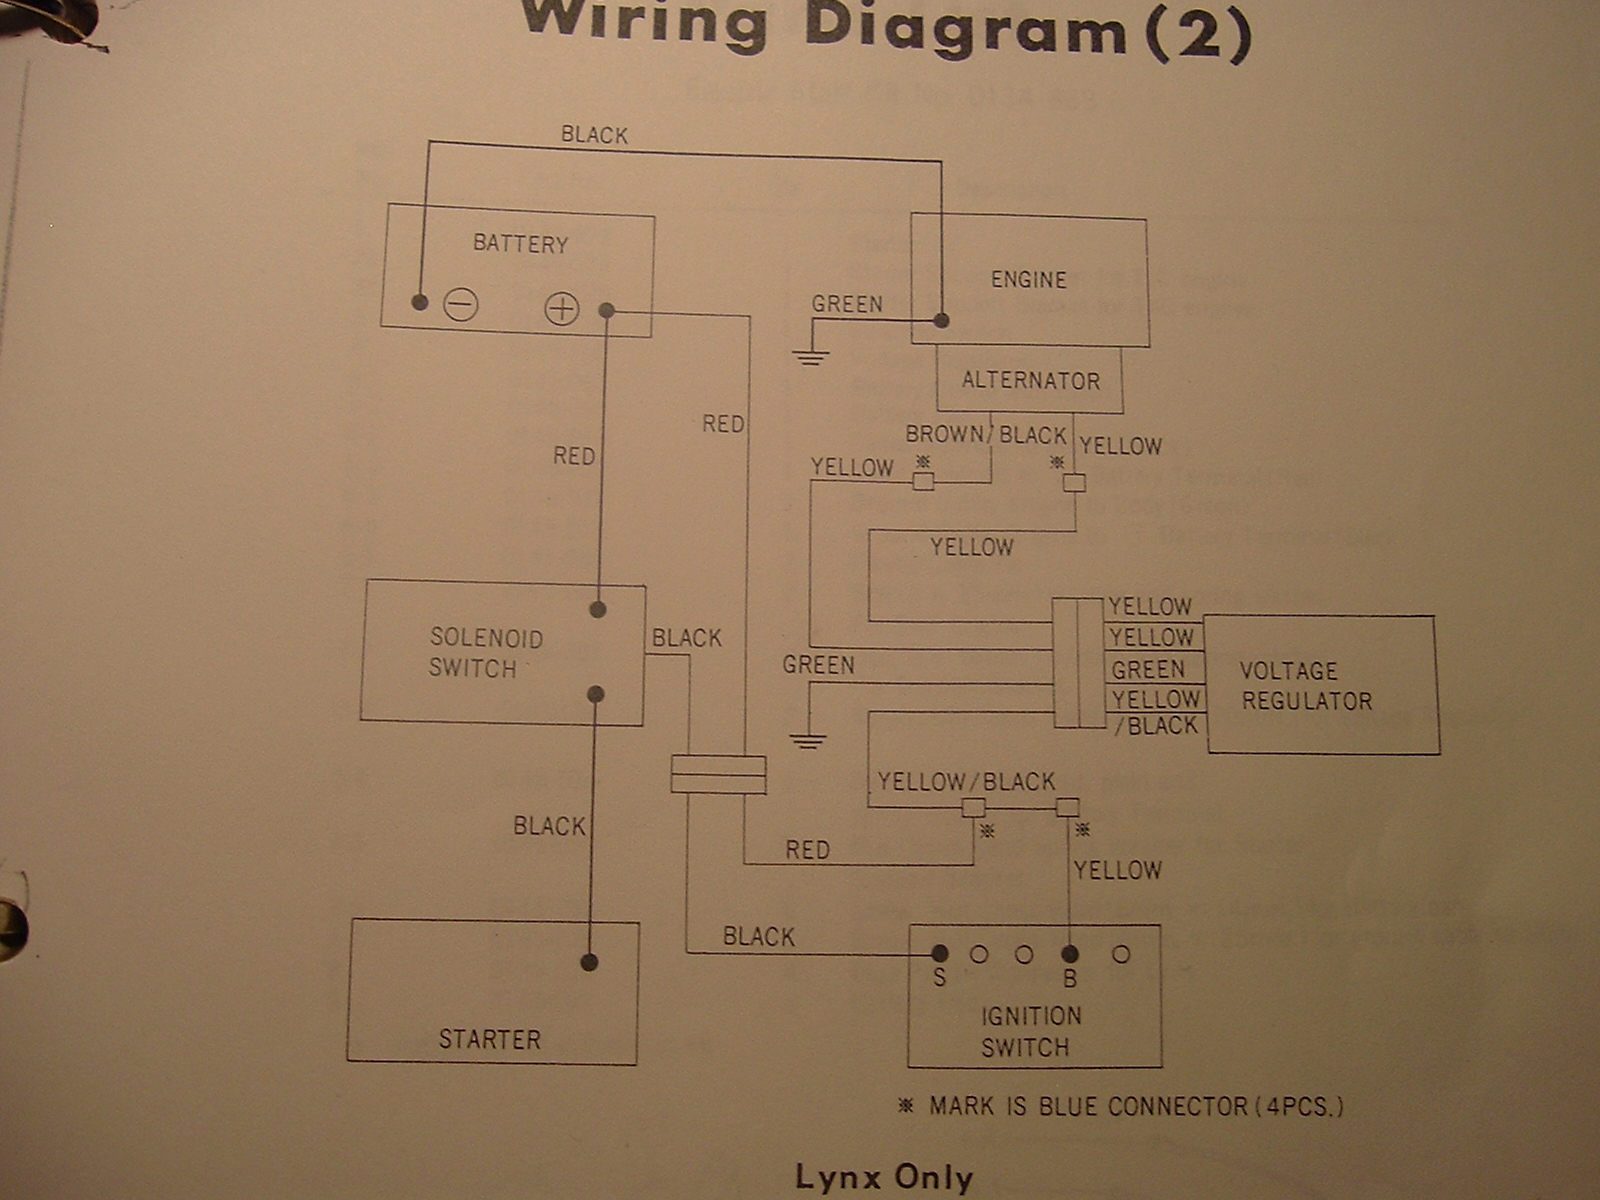 WRG-5771] Arctic Cat 580 Wiring Diagram on